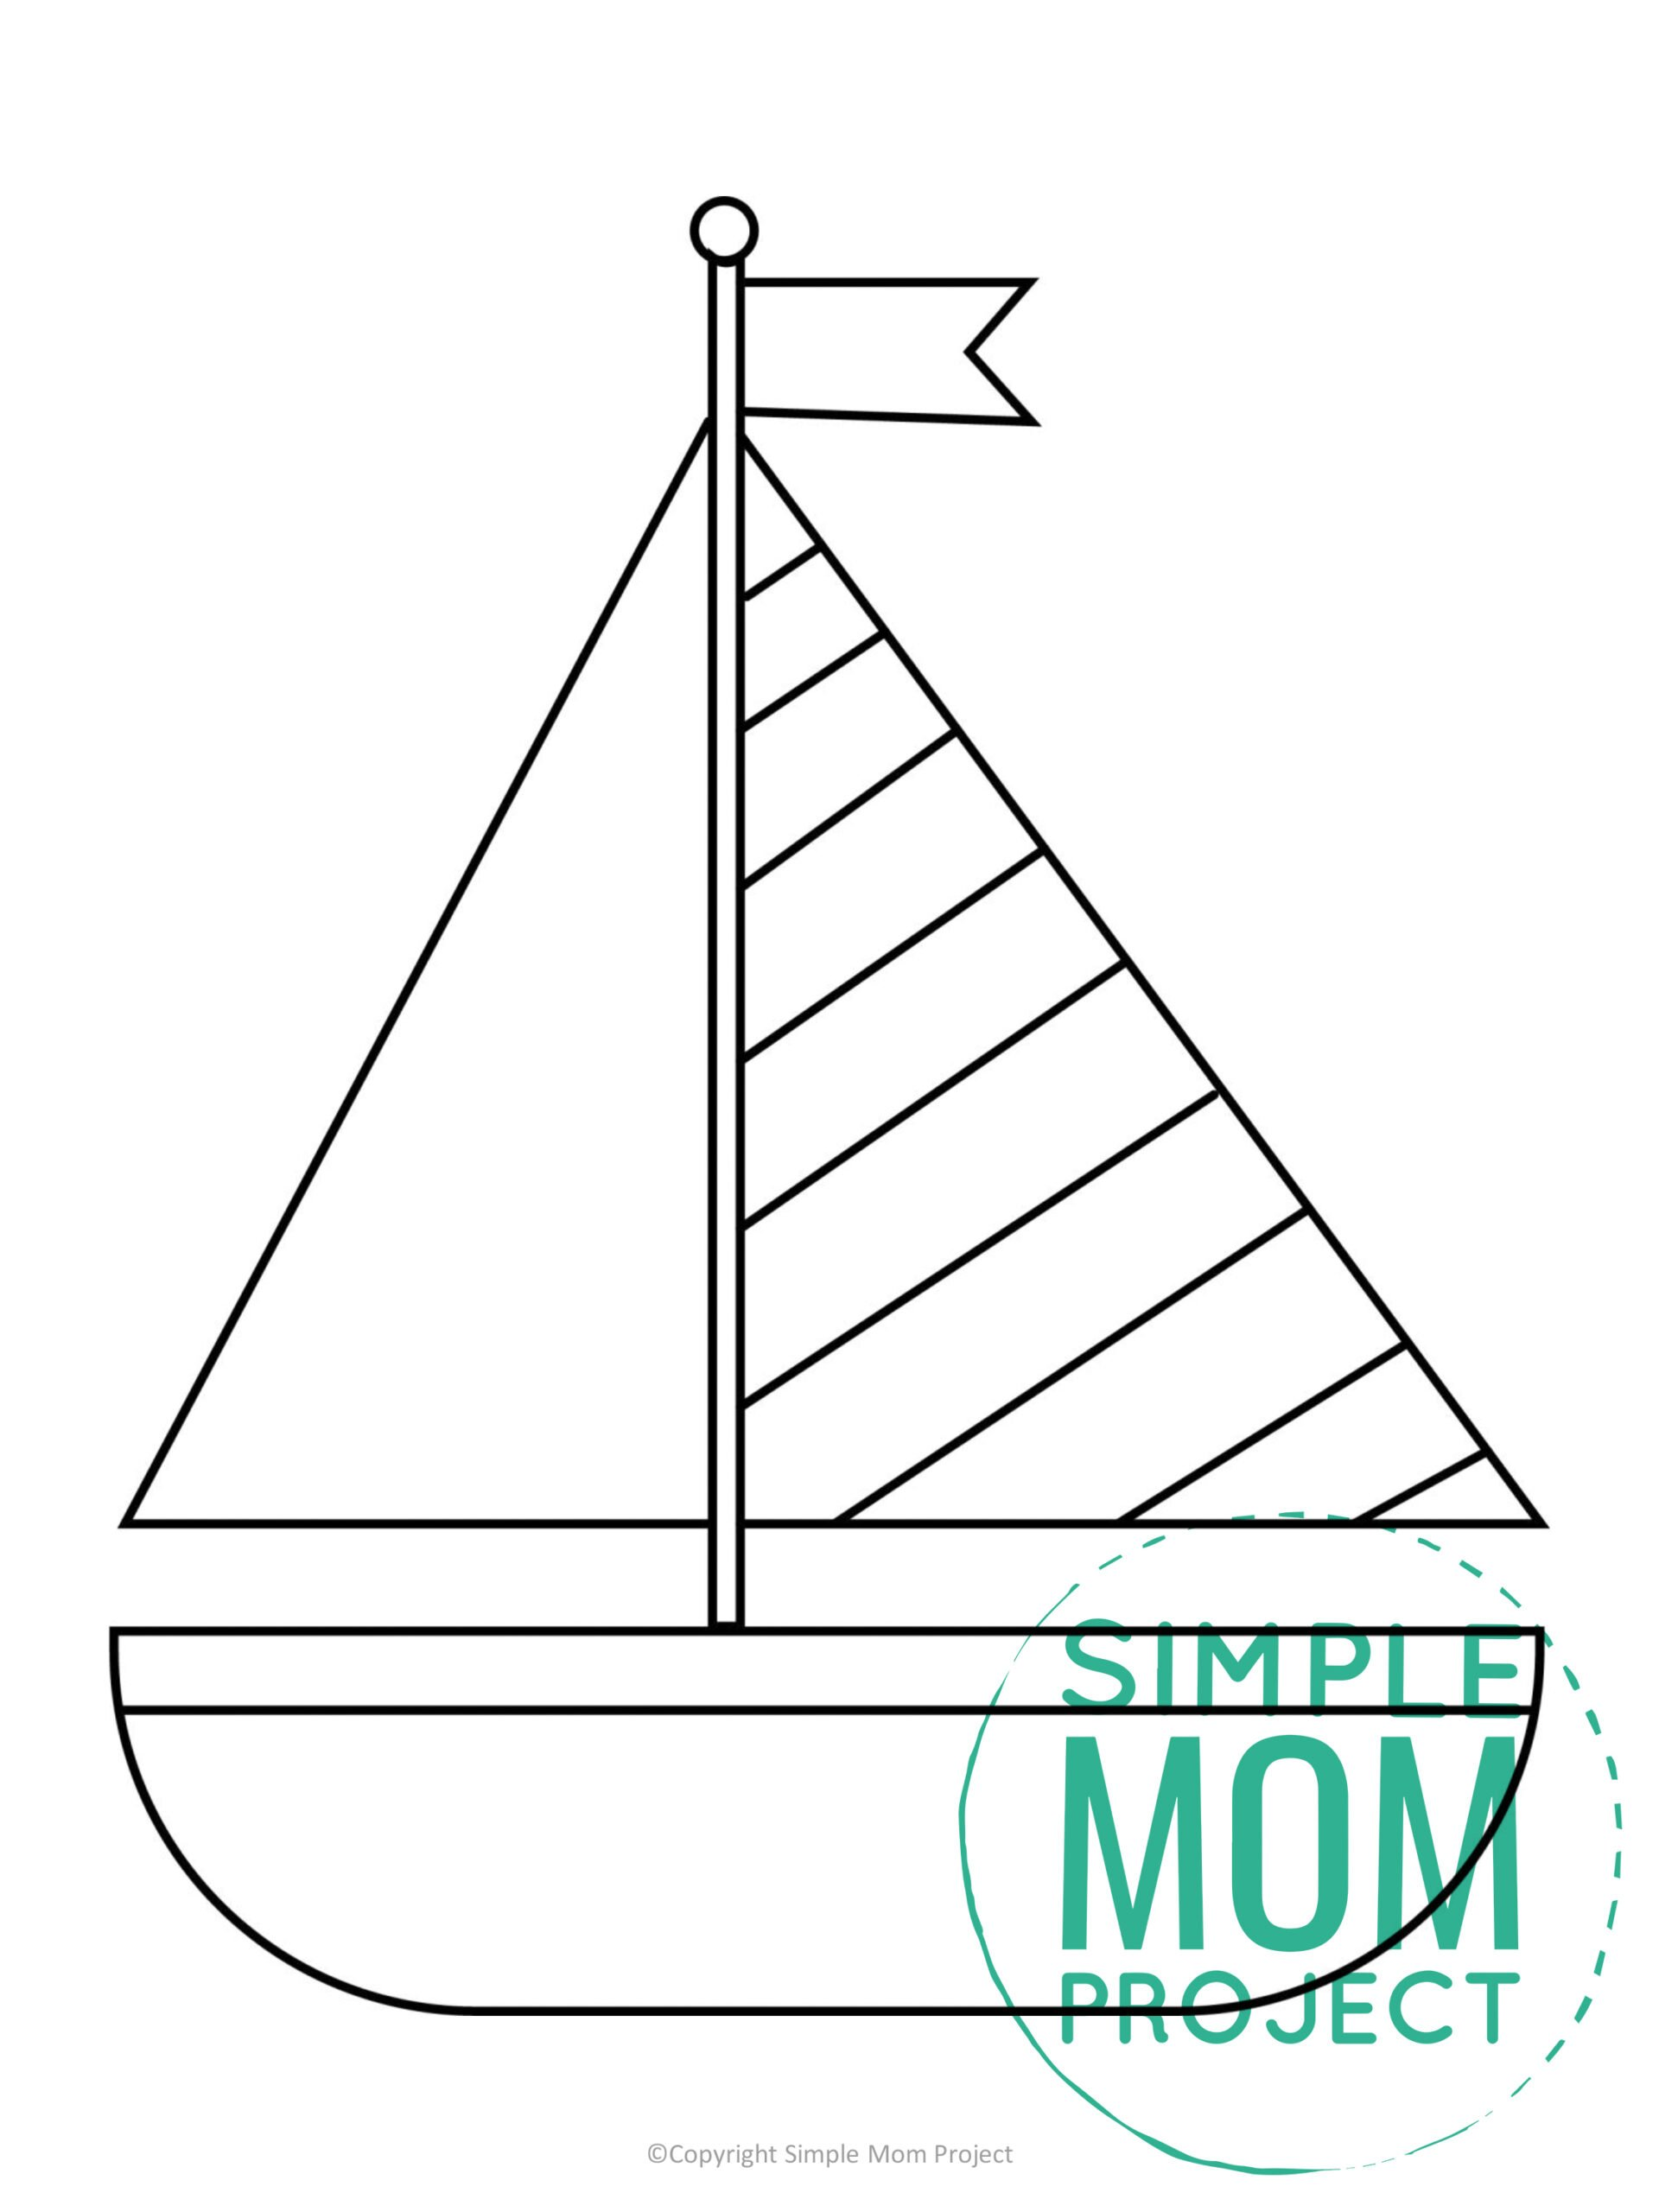 printable sailboat template for preschoolers, toddlers and summer crafts